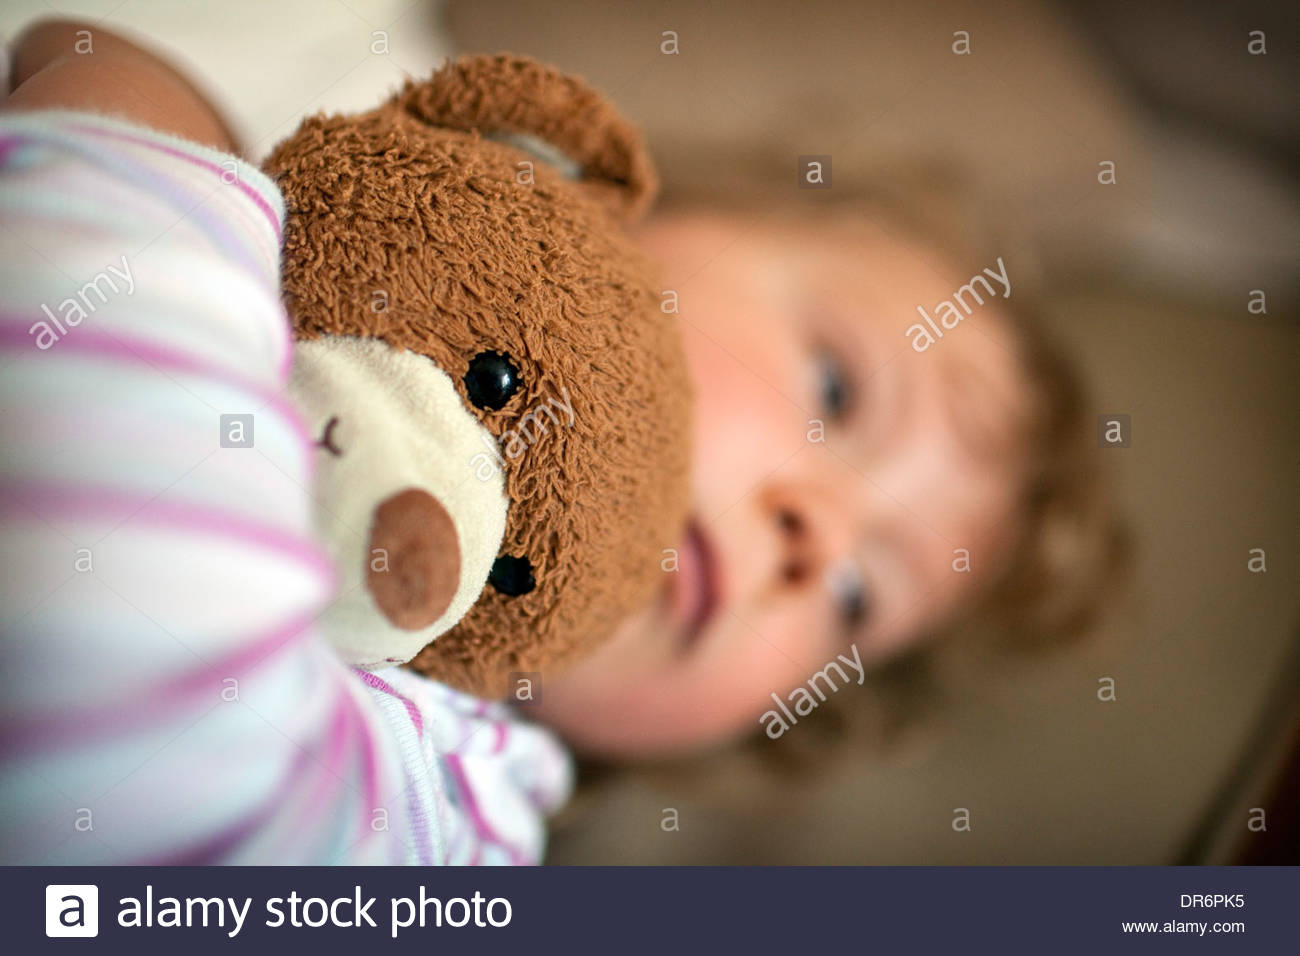 Girl holding a teddy bear and crying - Stock Image